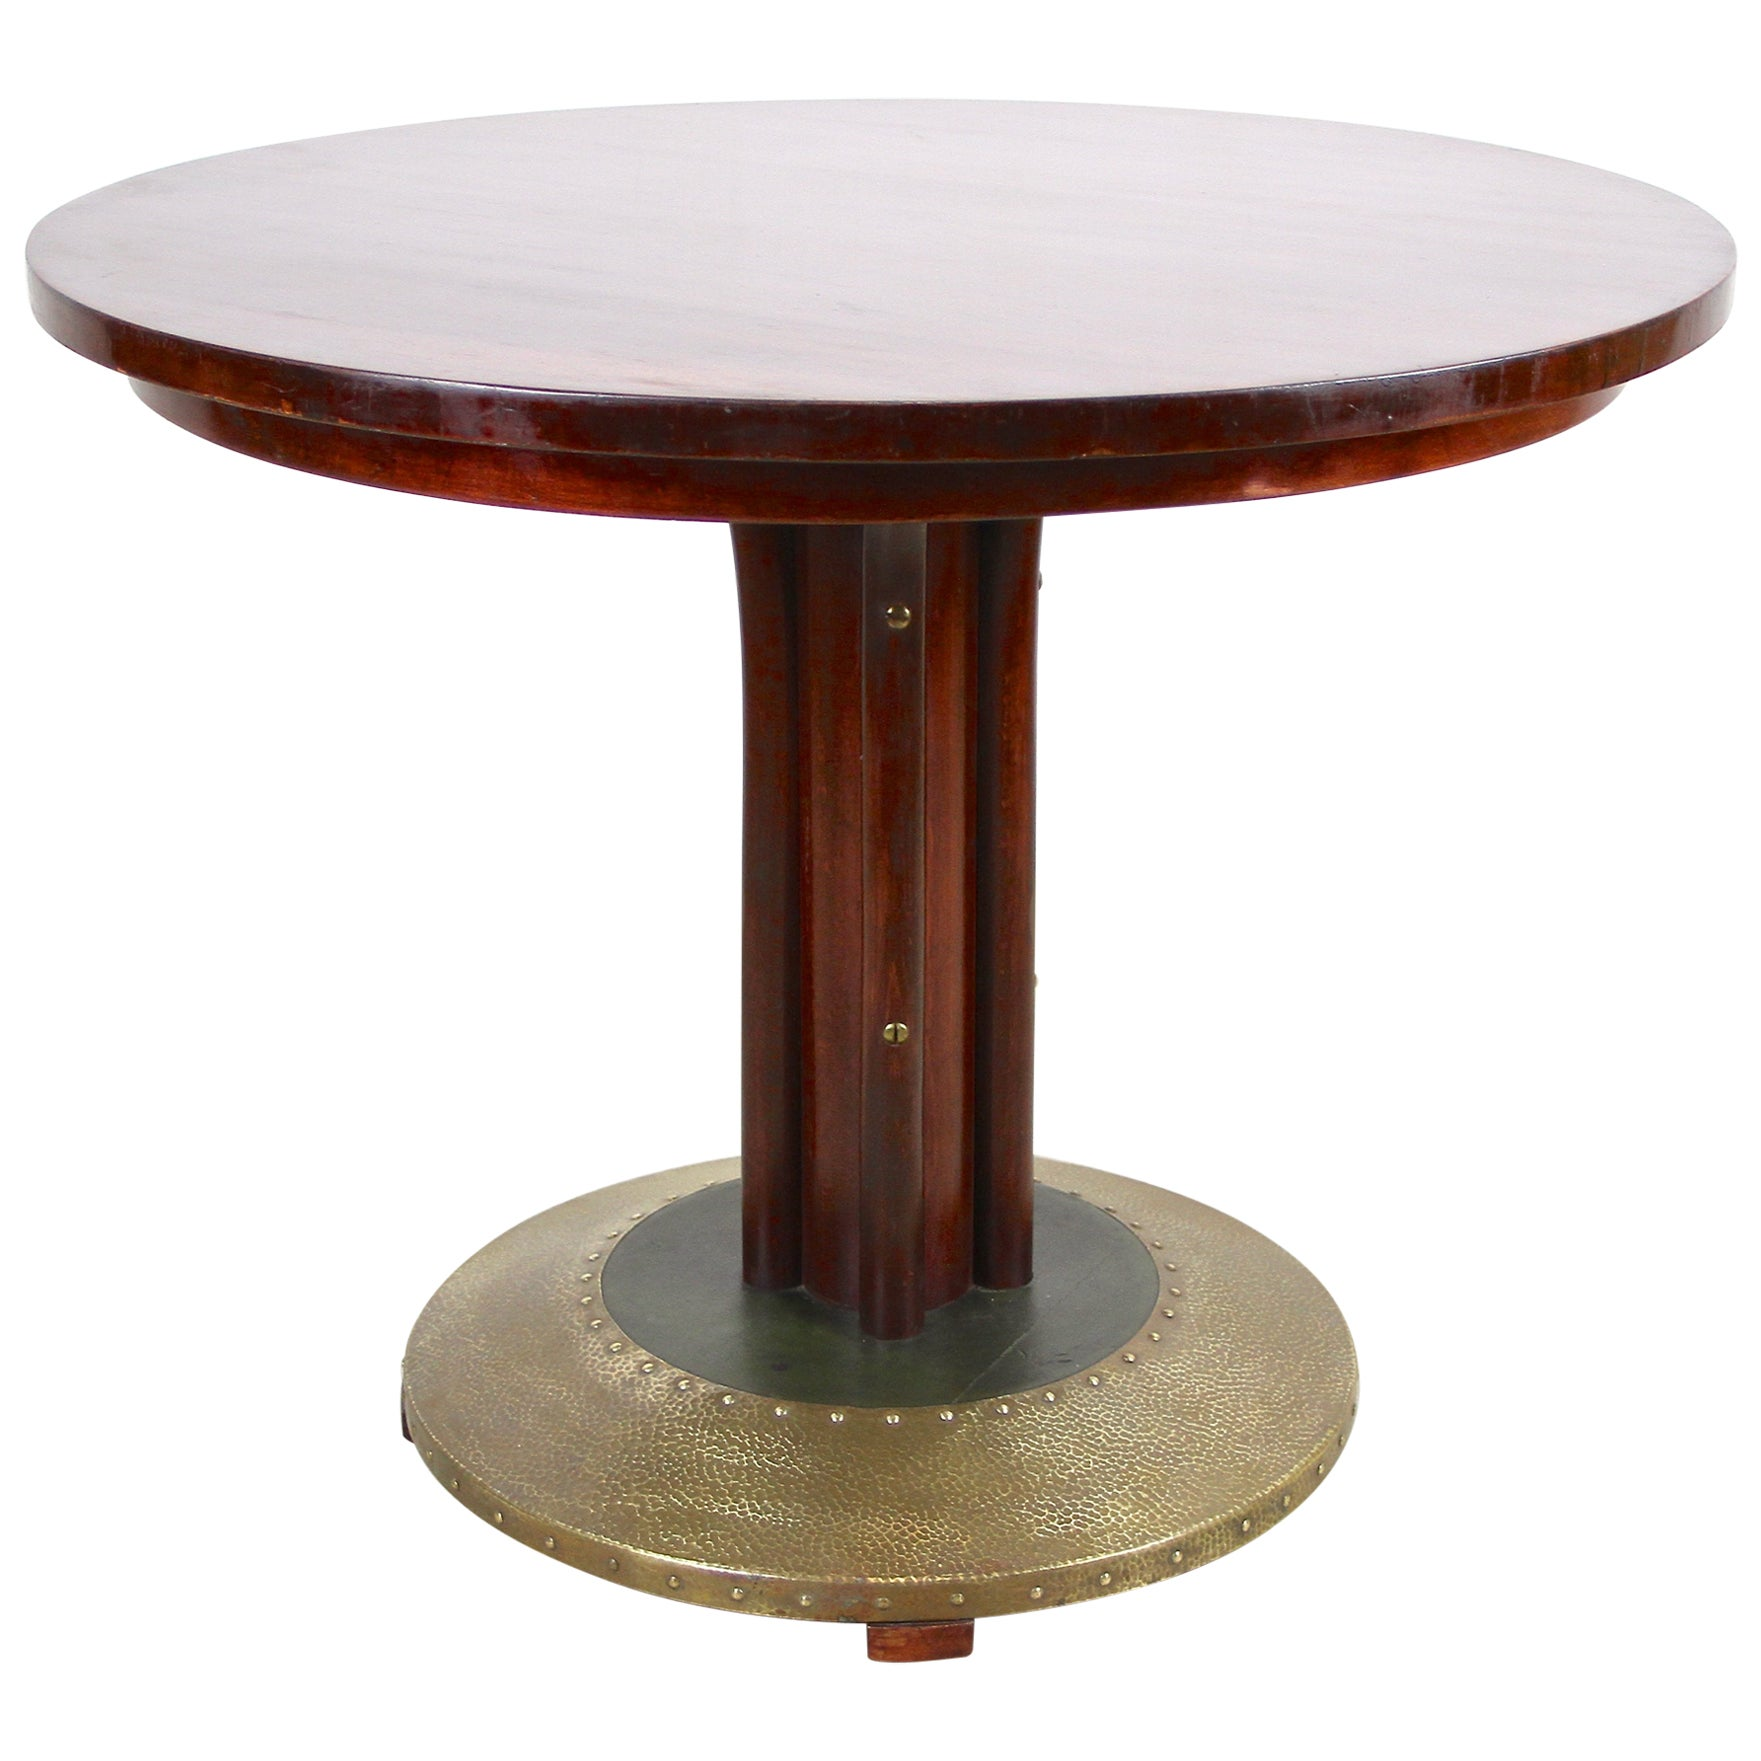 Thonet Bentwood Coffee Table with Hammered Brass Base, Austria, circa 1915